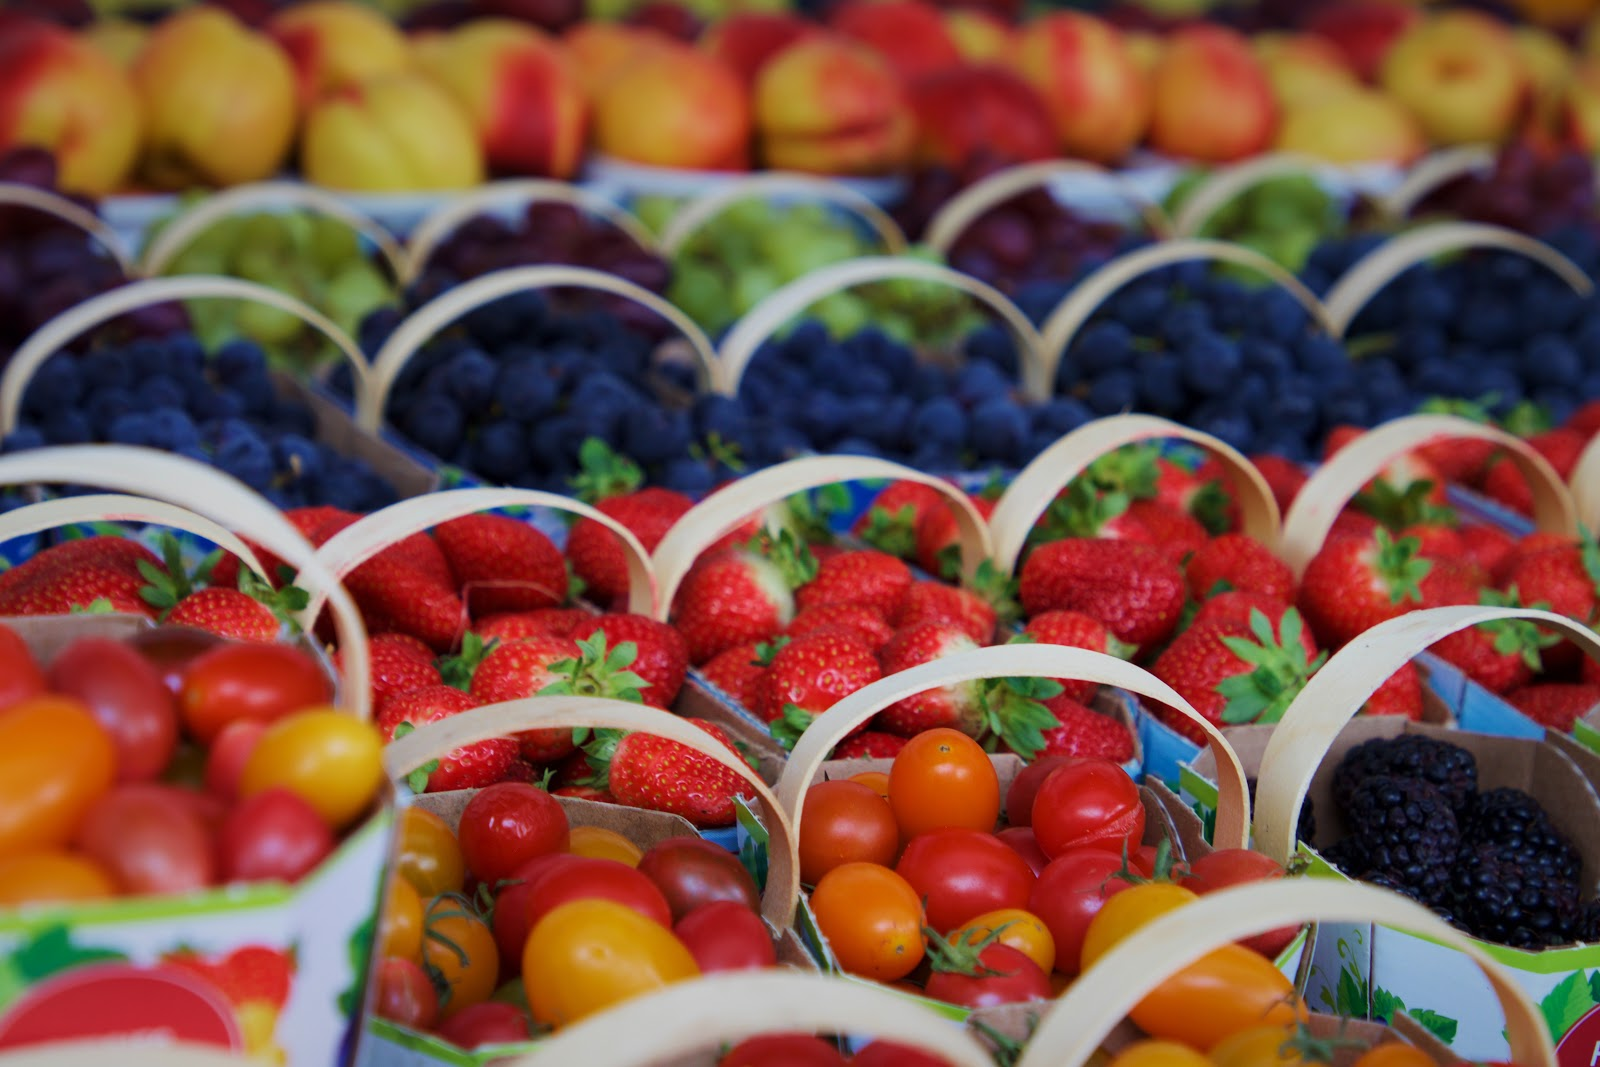 Farmers market stand with berry baskets